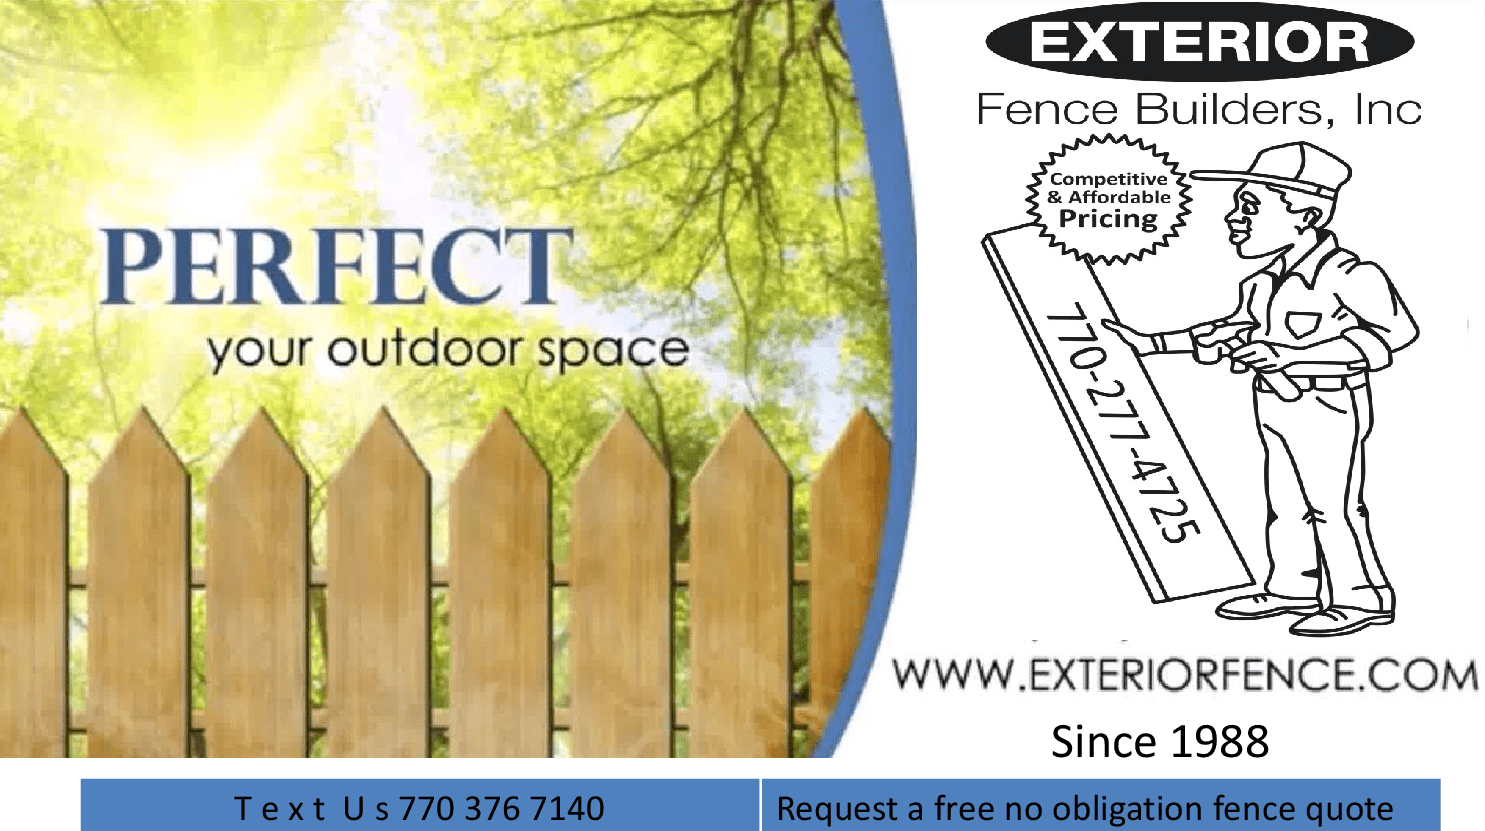 Exterior Fence Builders Trusted Fence Builders Since 1988